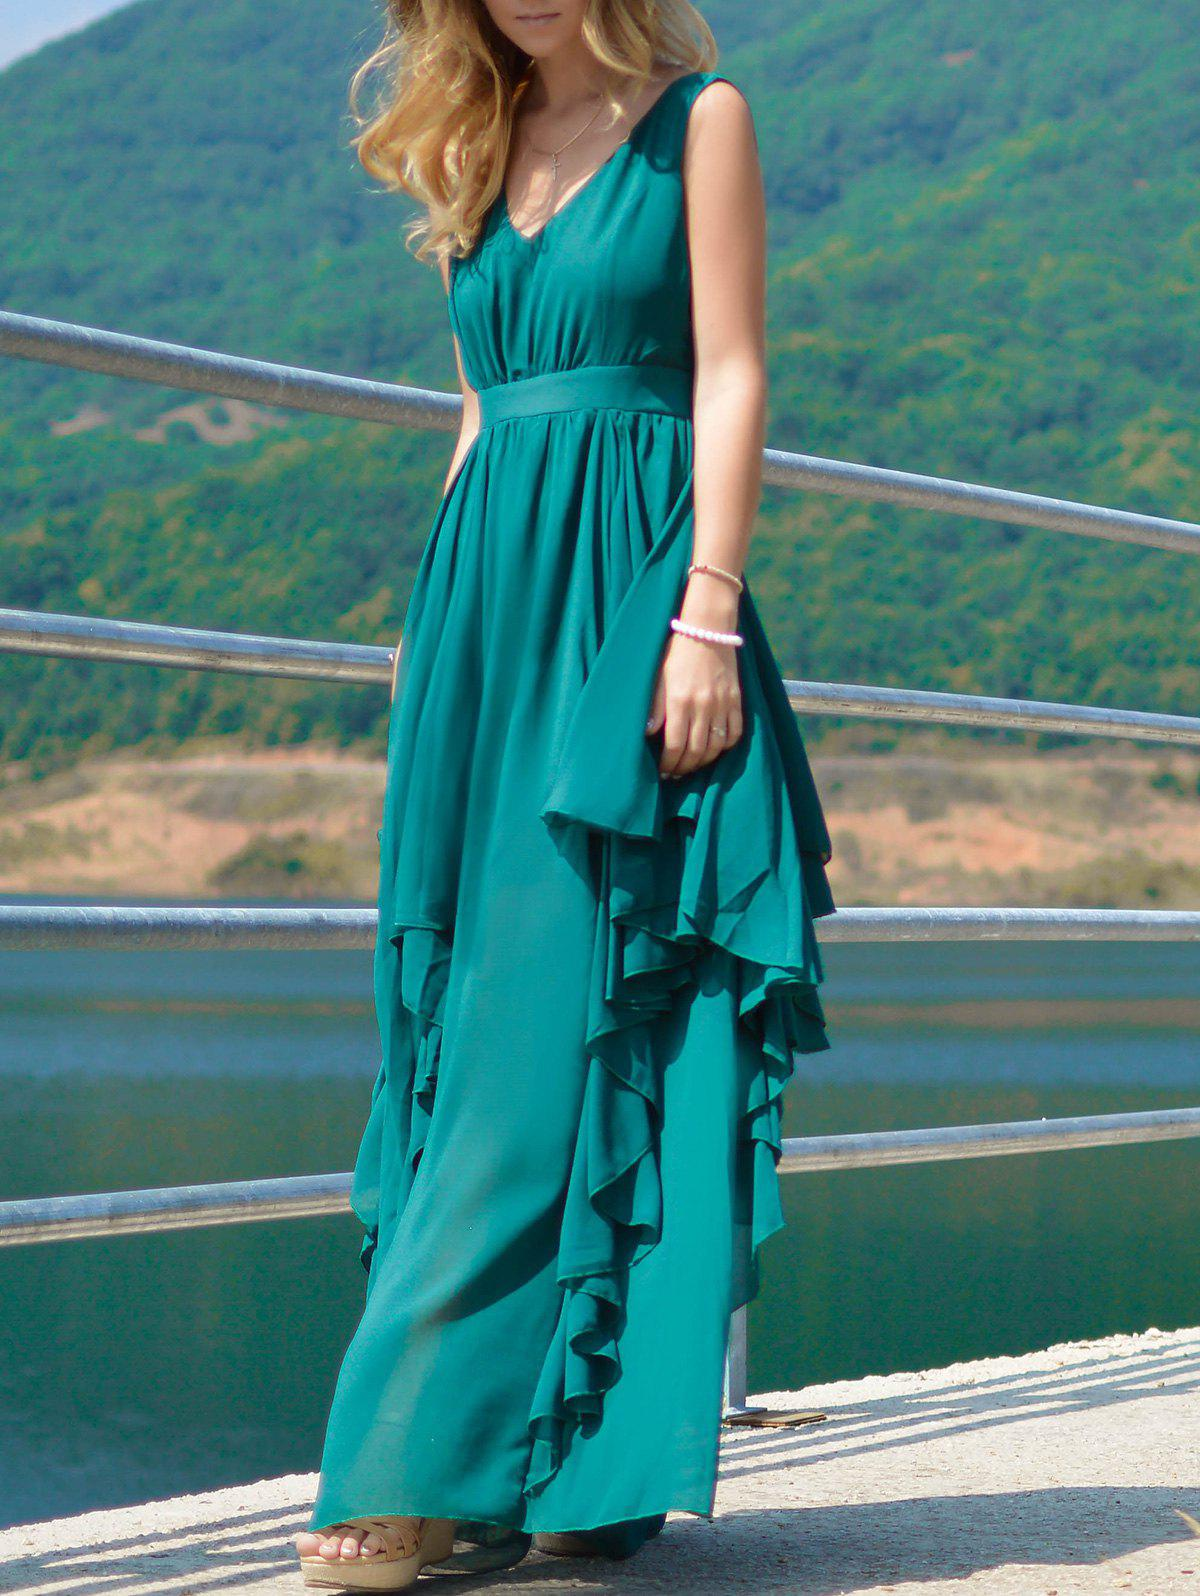 Stylish Plunging Neck Pure Color Chiffon Dress For Women